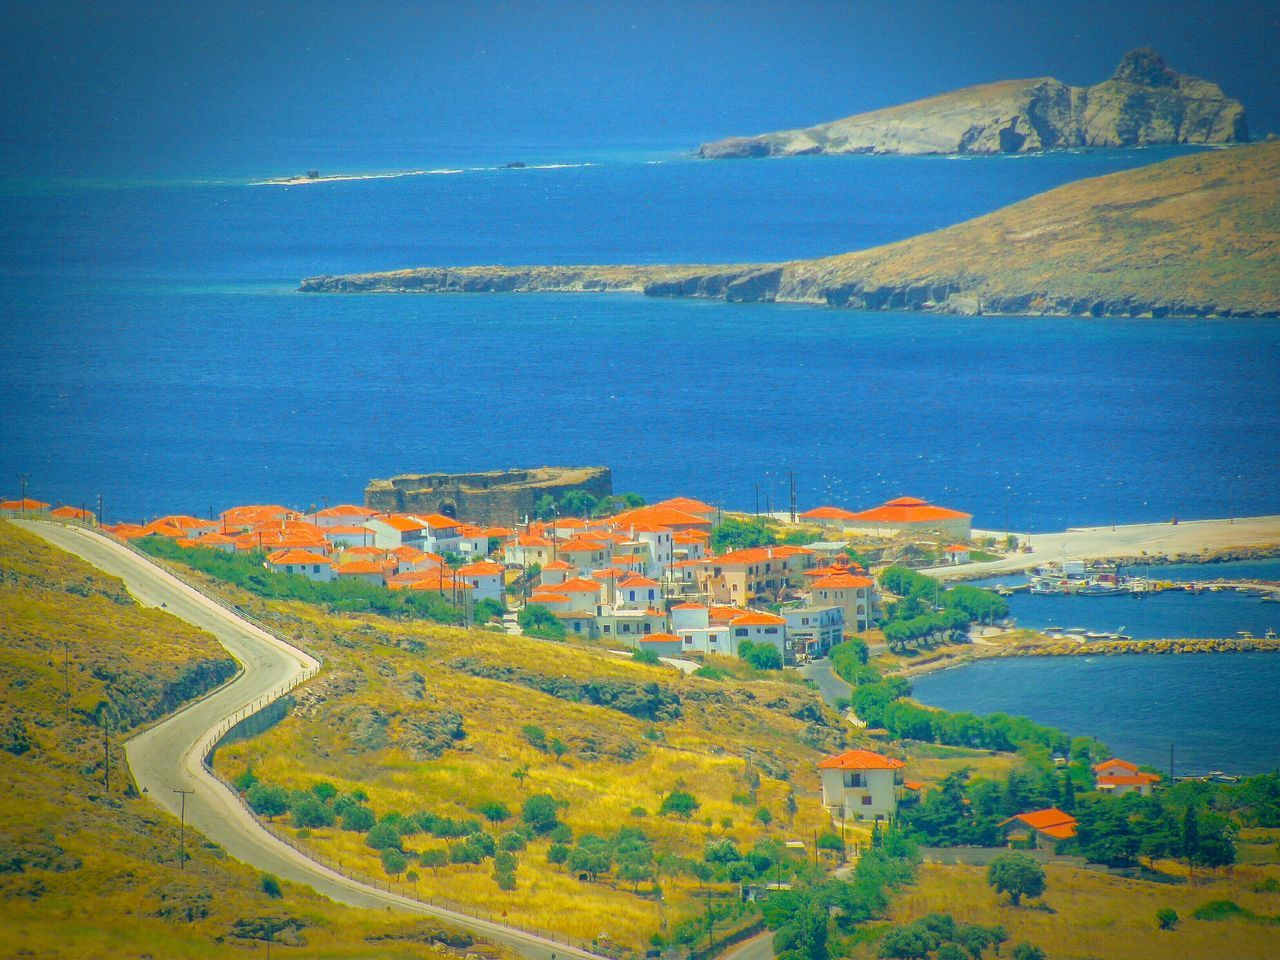 Village Village View Seaside Village Houses Roofs Red Roofs Islets Countryside Country Road Seascape Landscape_Collection Landscapes Landscape Lesvos Island Greek Islands The Great Outdoors - 2016 EyeEm Awards Port Small Port Shades Of Blue Blue Sea Blue Horizons View From The Top Viewpoint A Bird's Eye View